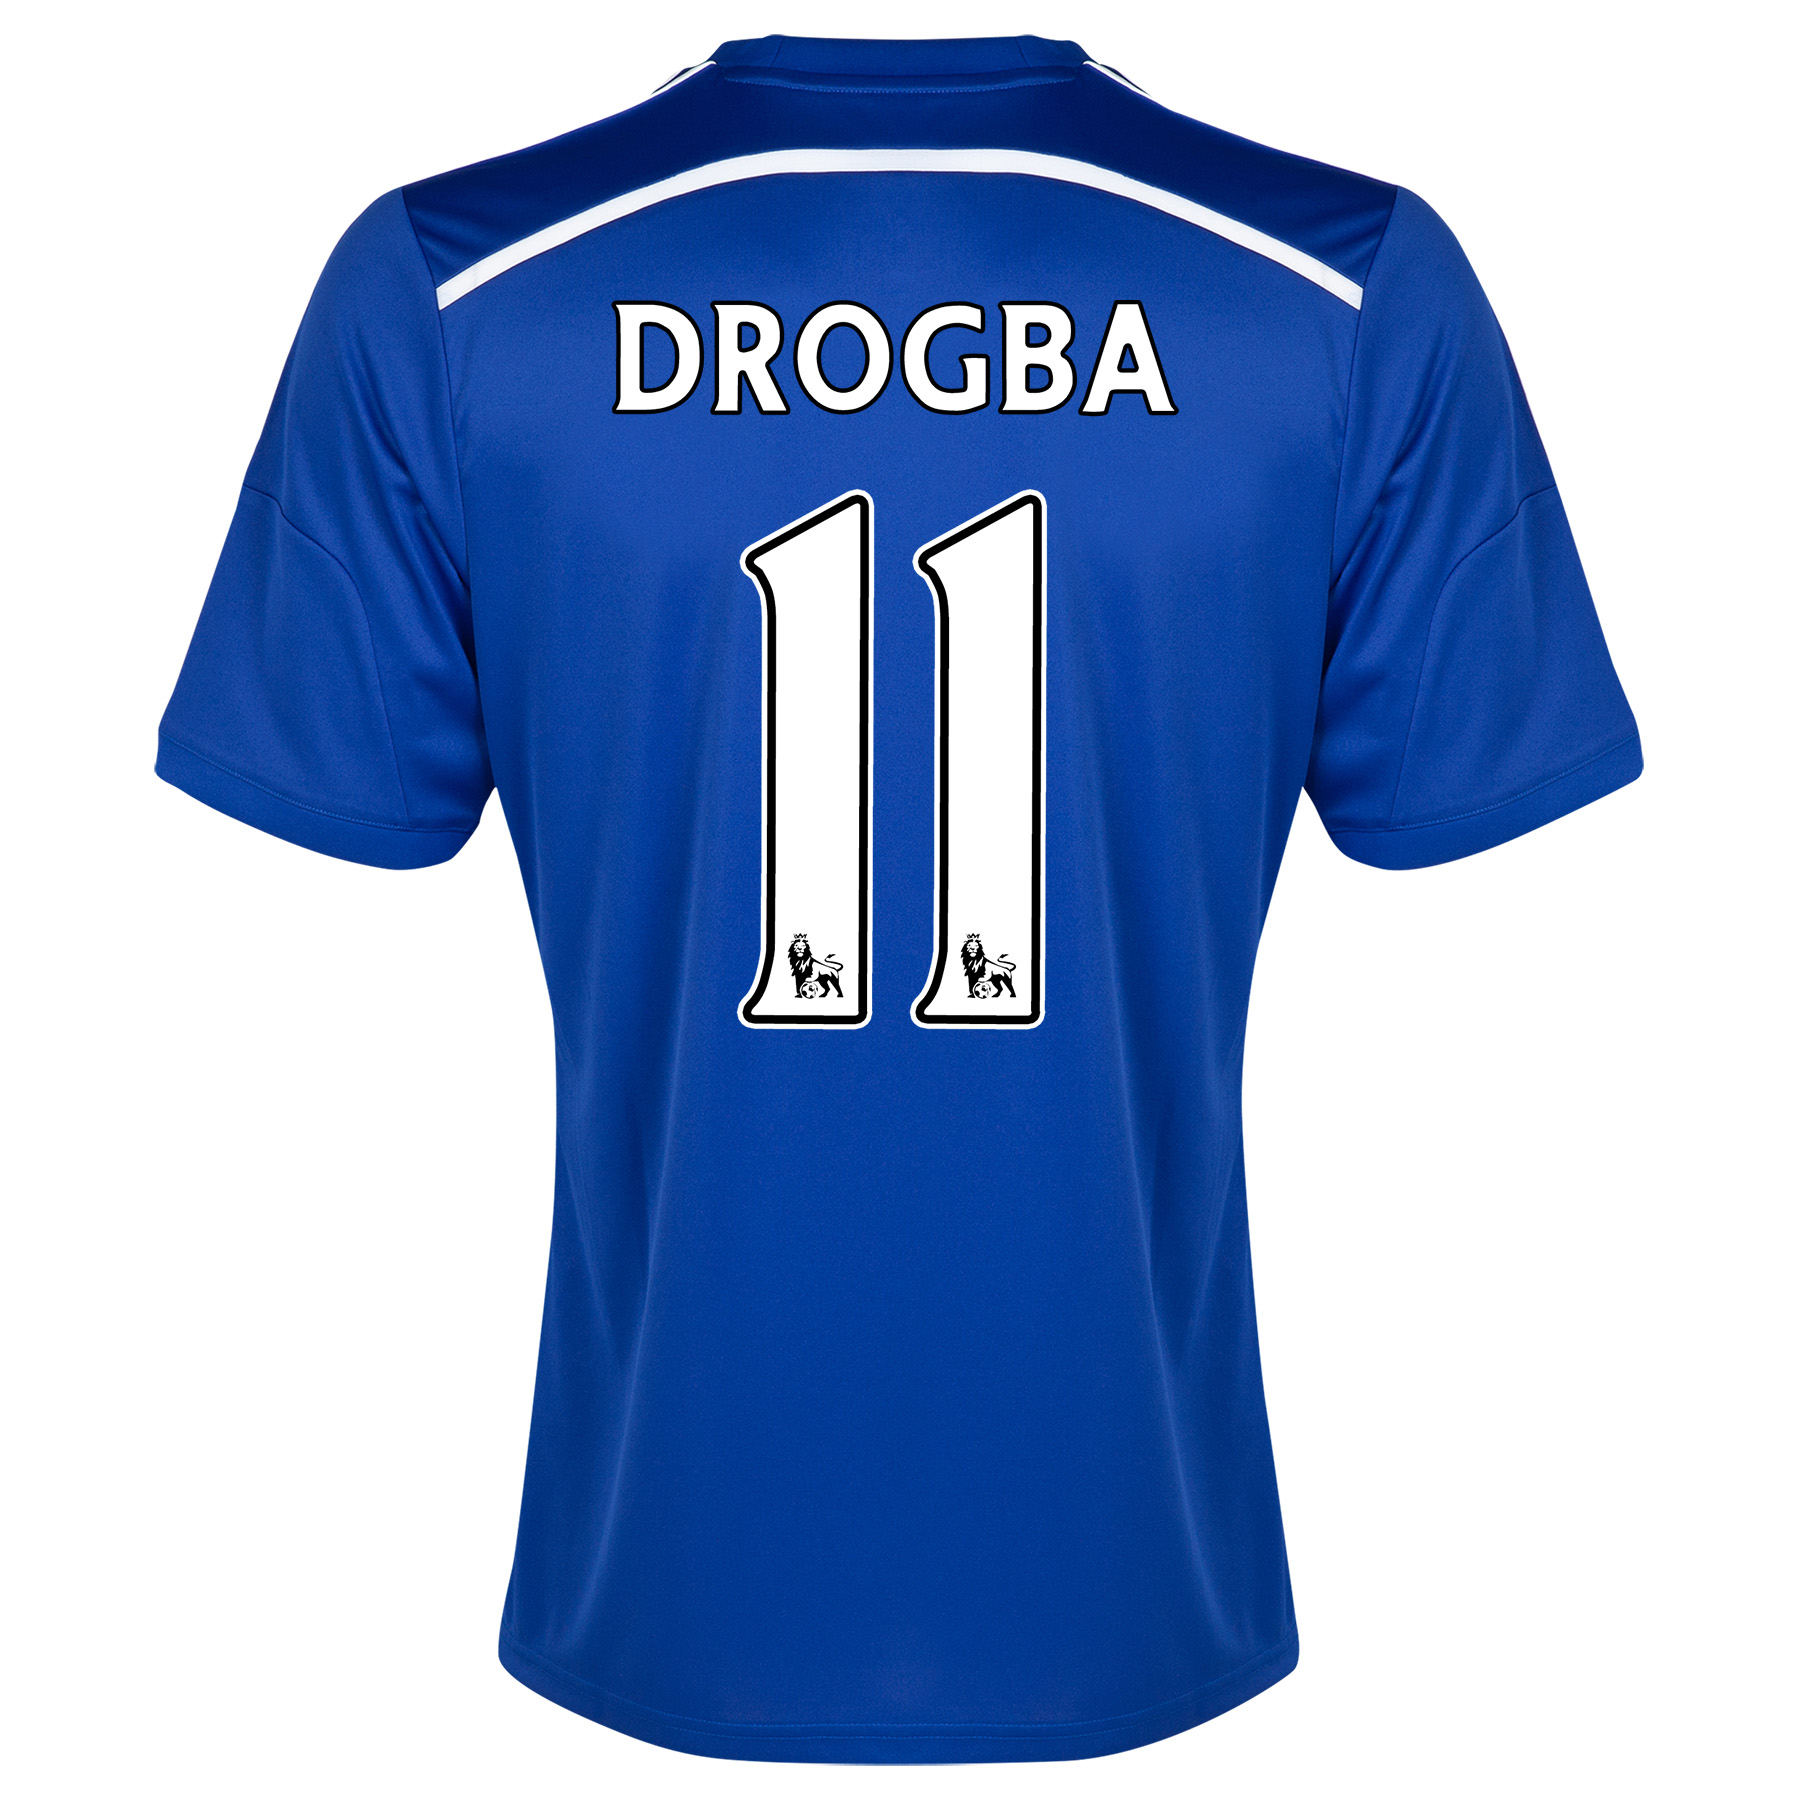 Chelsea Home Shirt 2014/15 with Drogba 15 printing